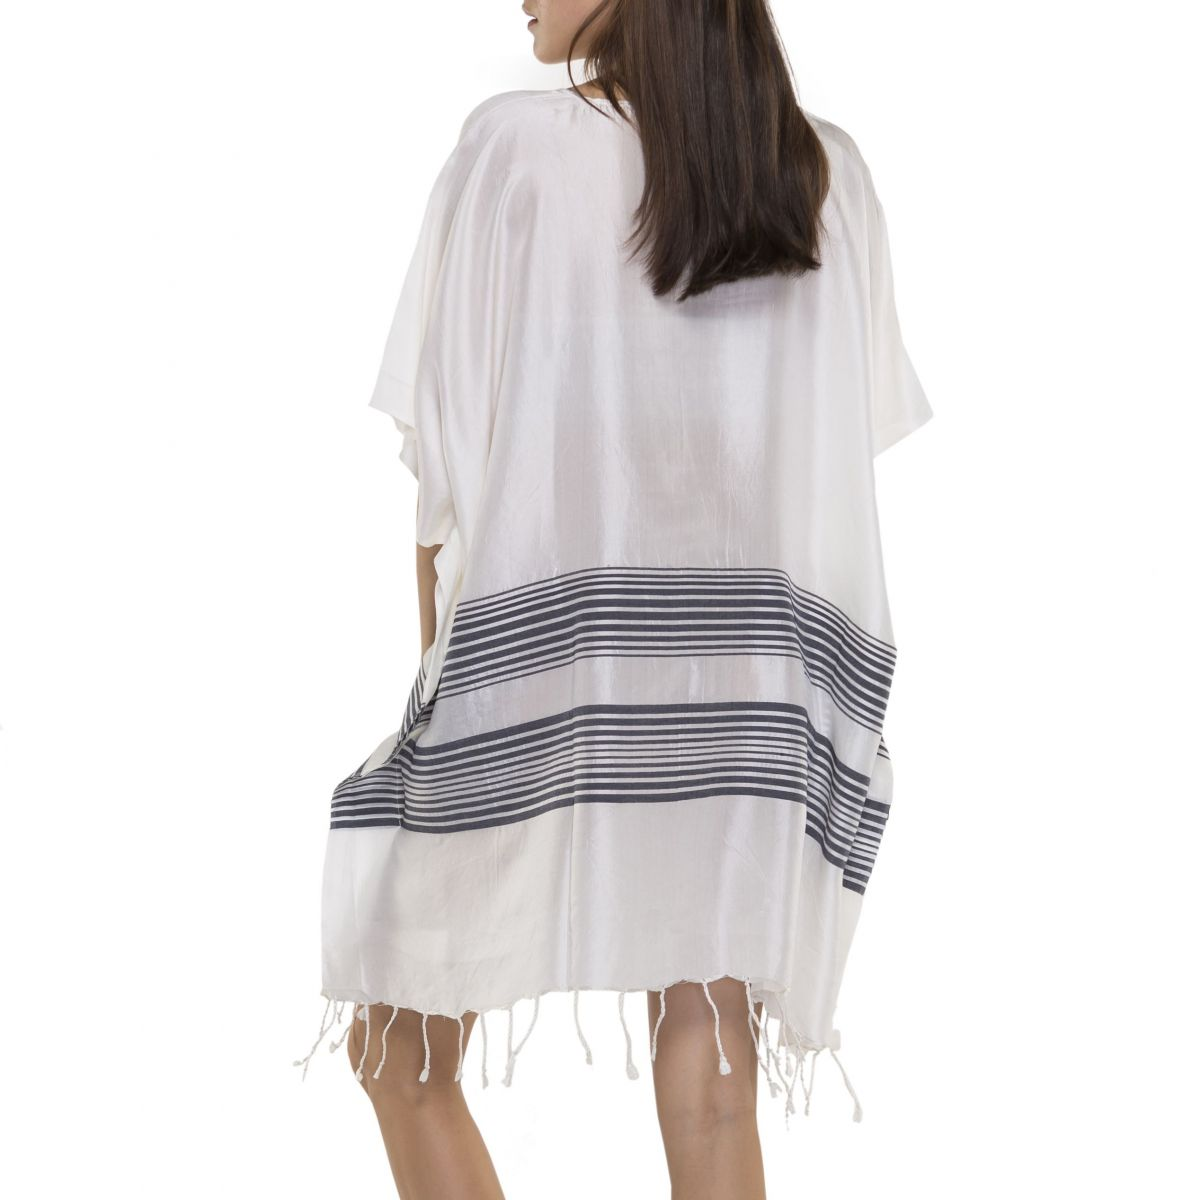 Tunic / Dress Silk - Navy Stripes